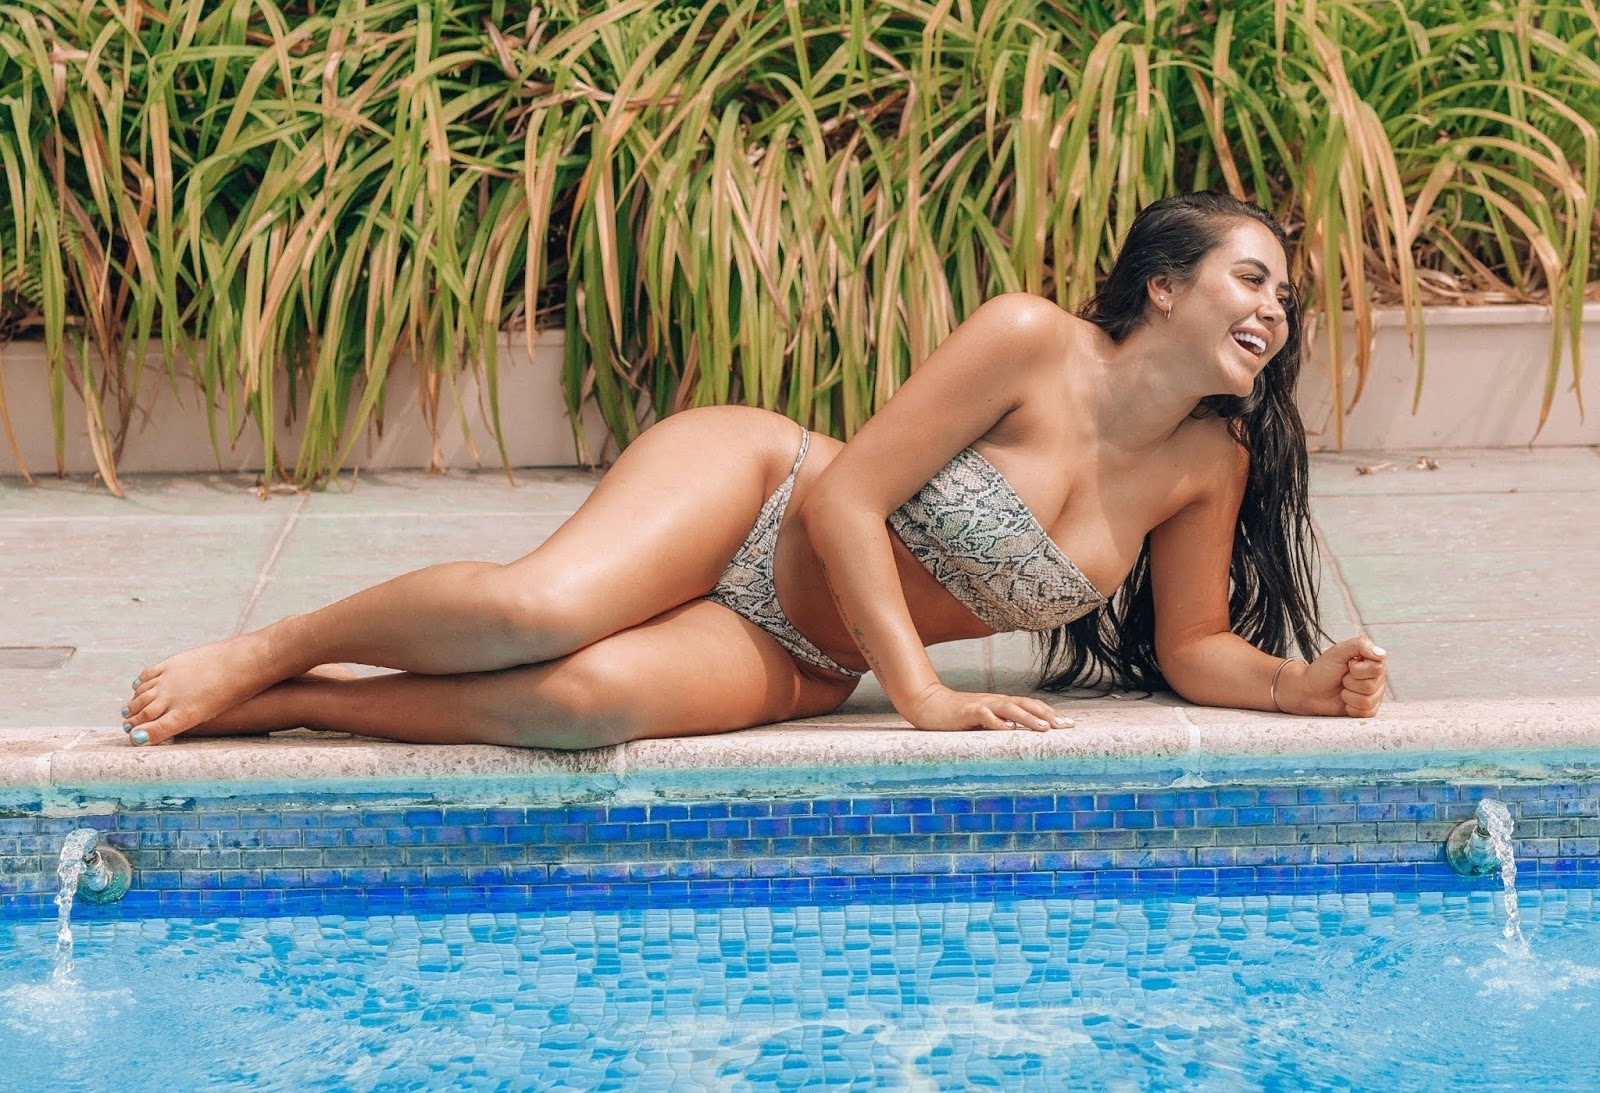 Marnie-Simpson-was-spotted-in-a-snakeskin-bikini-in-Naples.-c6qm2v774a.jpg